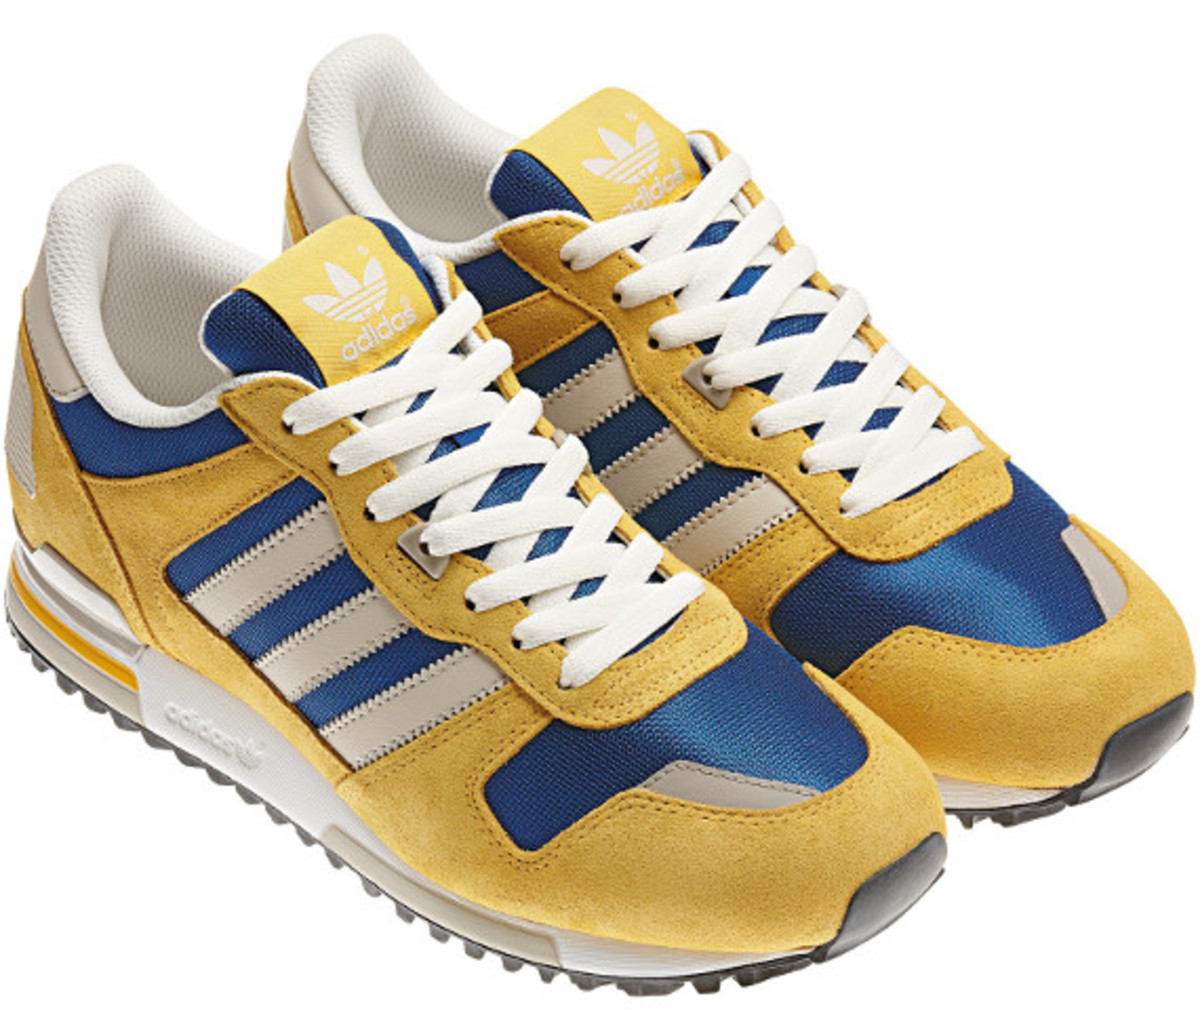 adidas-originals-spring-summer-2013-zx-pack-06